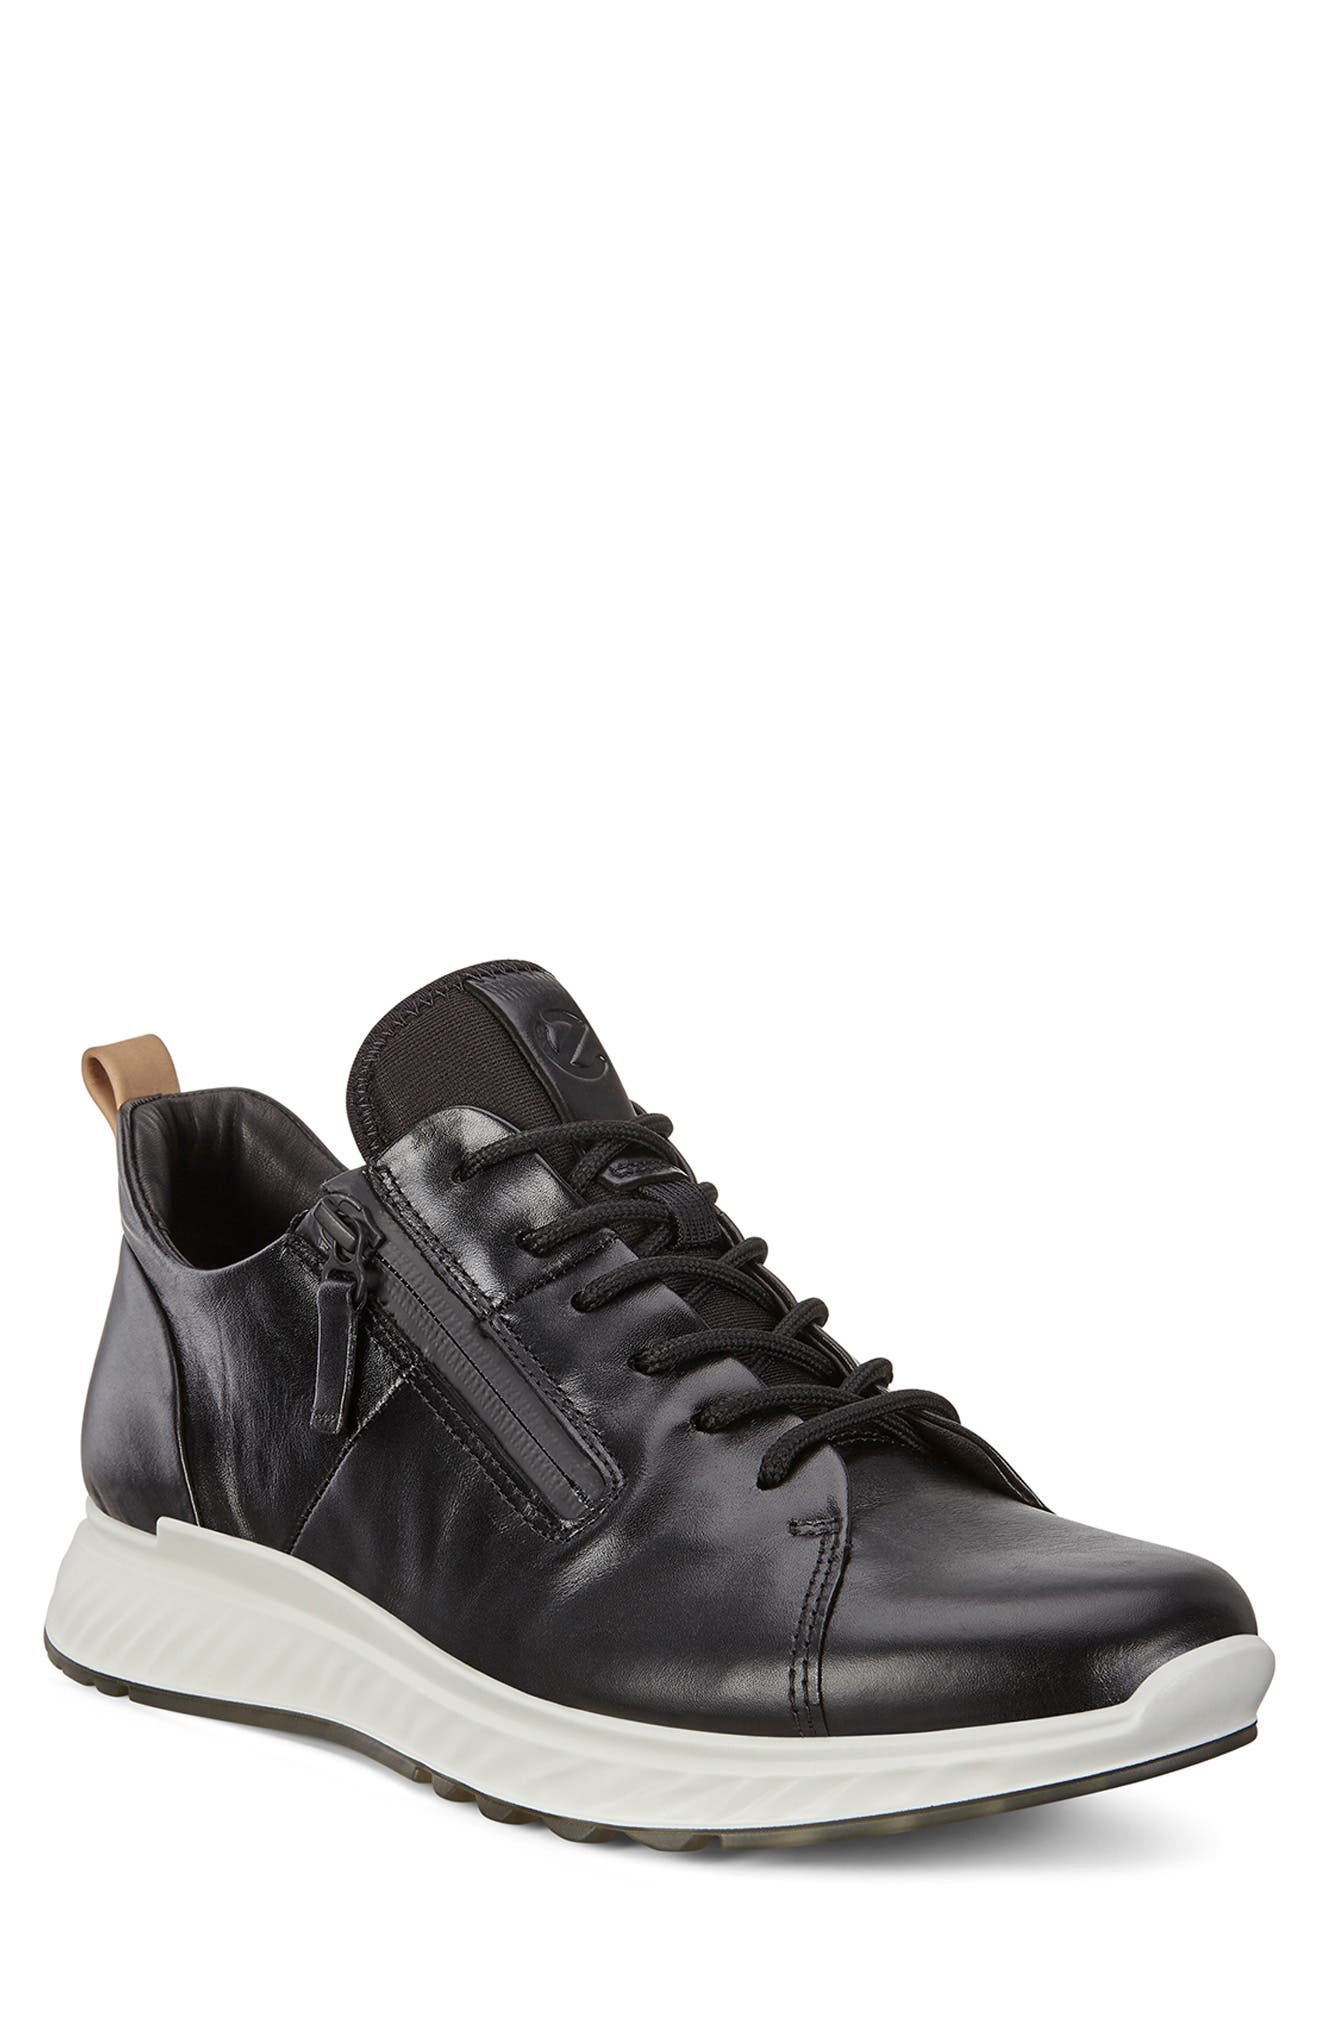 ST1 Zipper Sneaker,                         Main,                         color, BLACK LEATHER